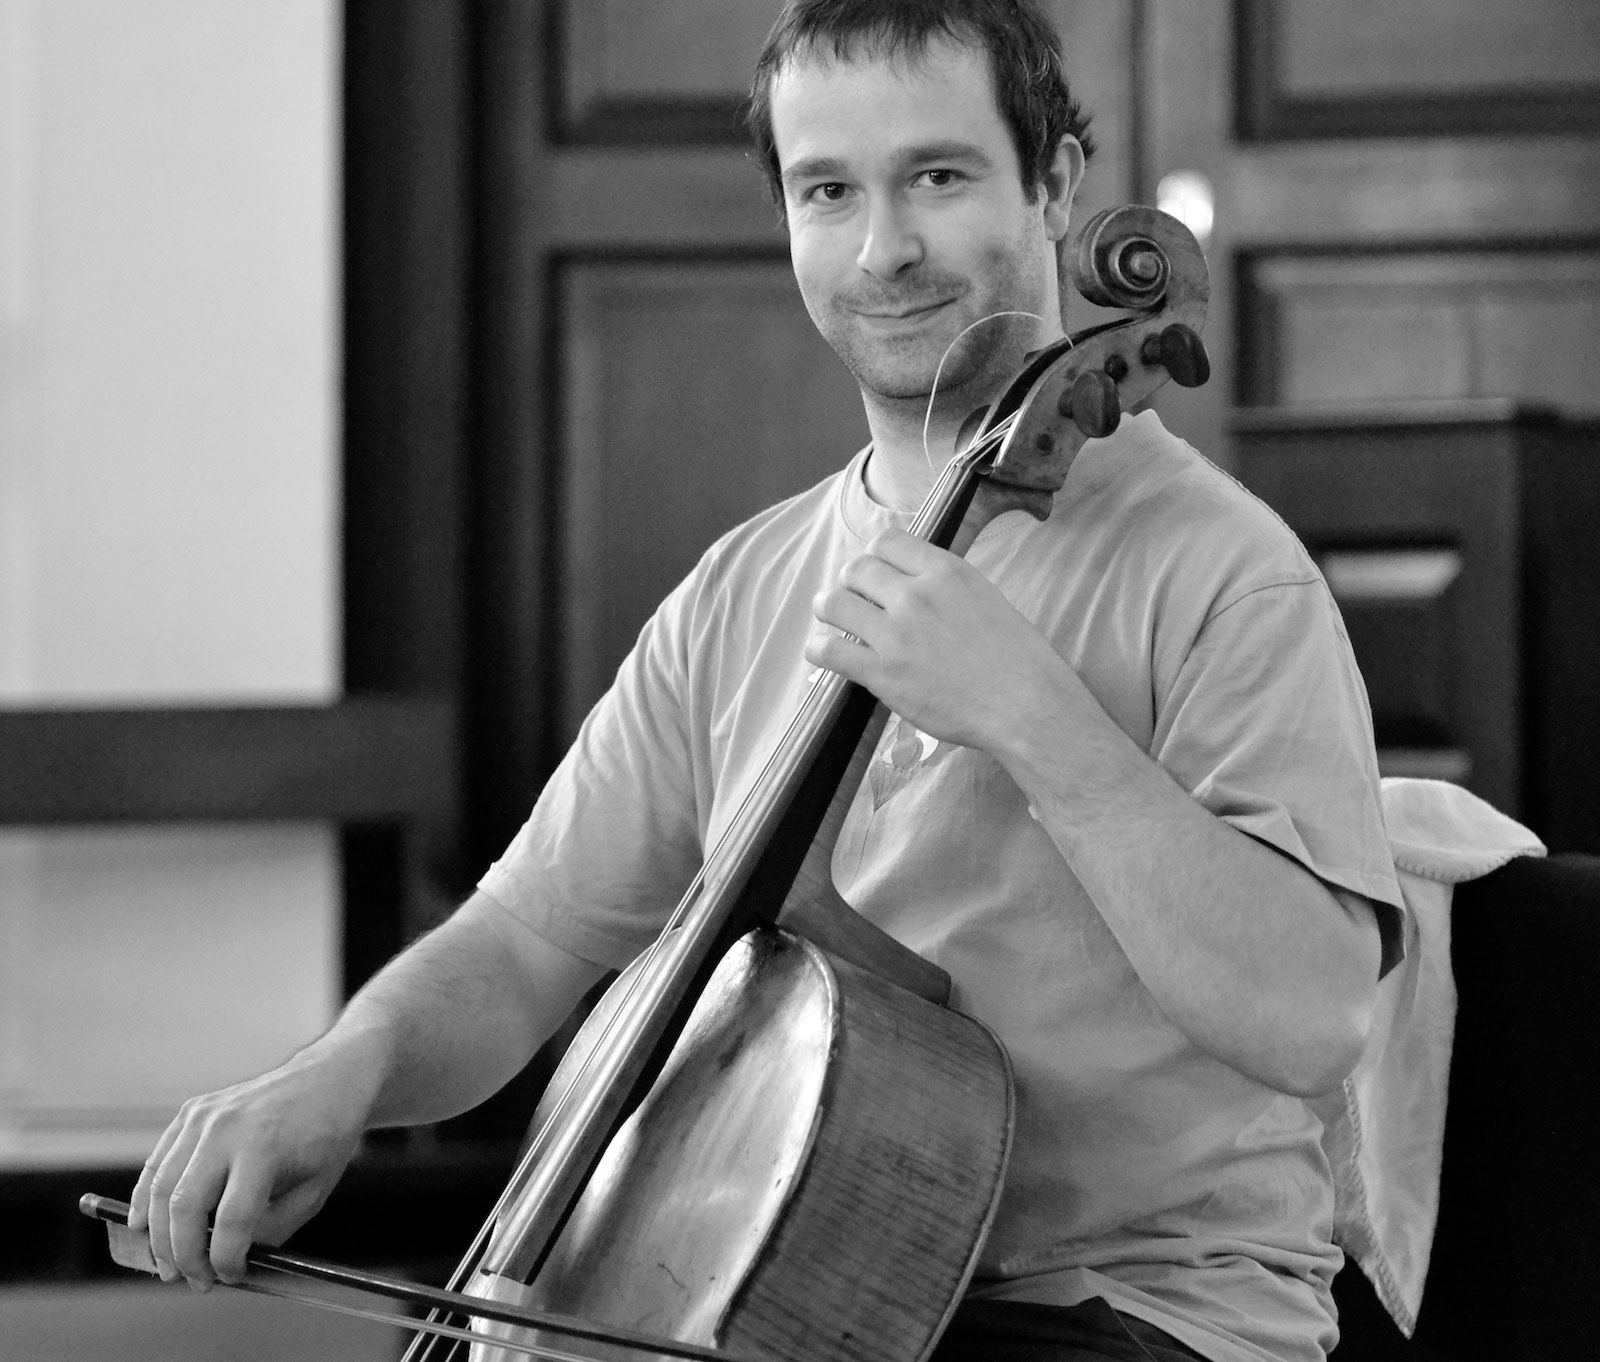 Christopher Suckling playing cello